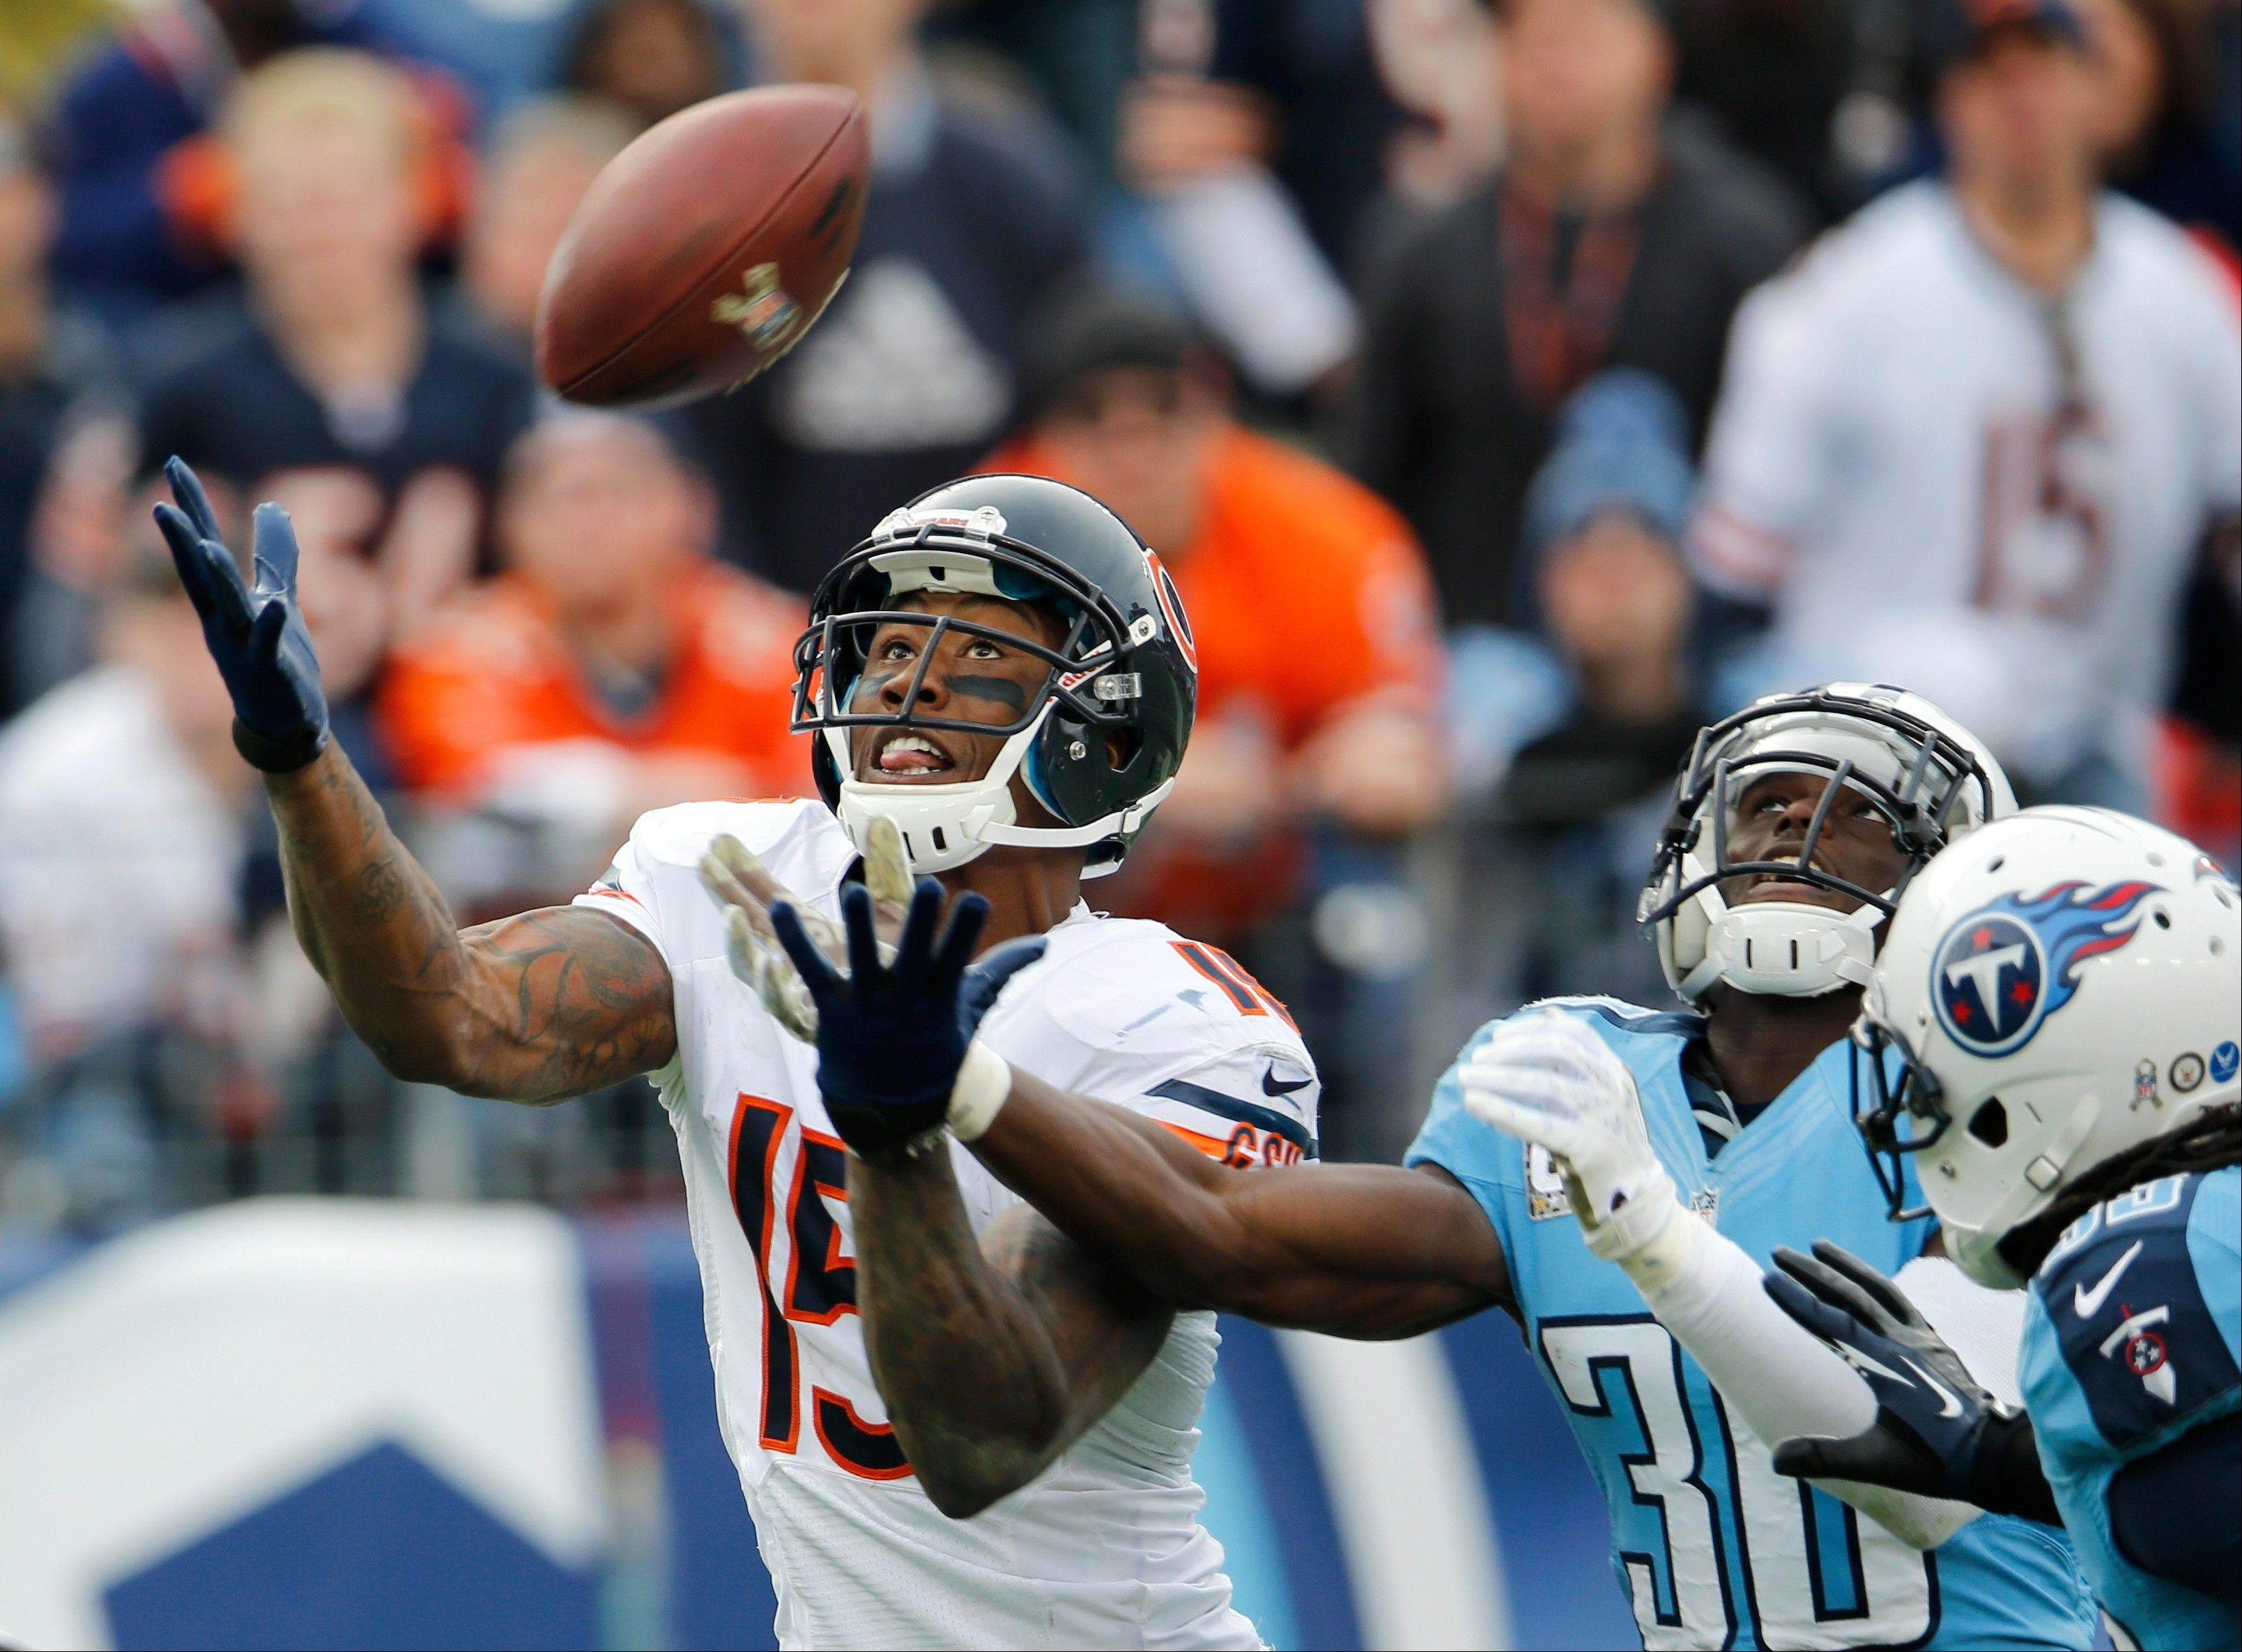 Chicago Bears wide receiver Brandon Marshall catches a 39-yard touchdown pass ahead of Tennessee Titans cornerback Jason McCourty (30) in the fourth quarter. The Bears beat the Titans 51-20.